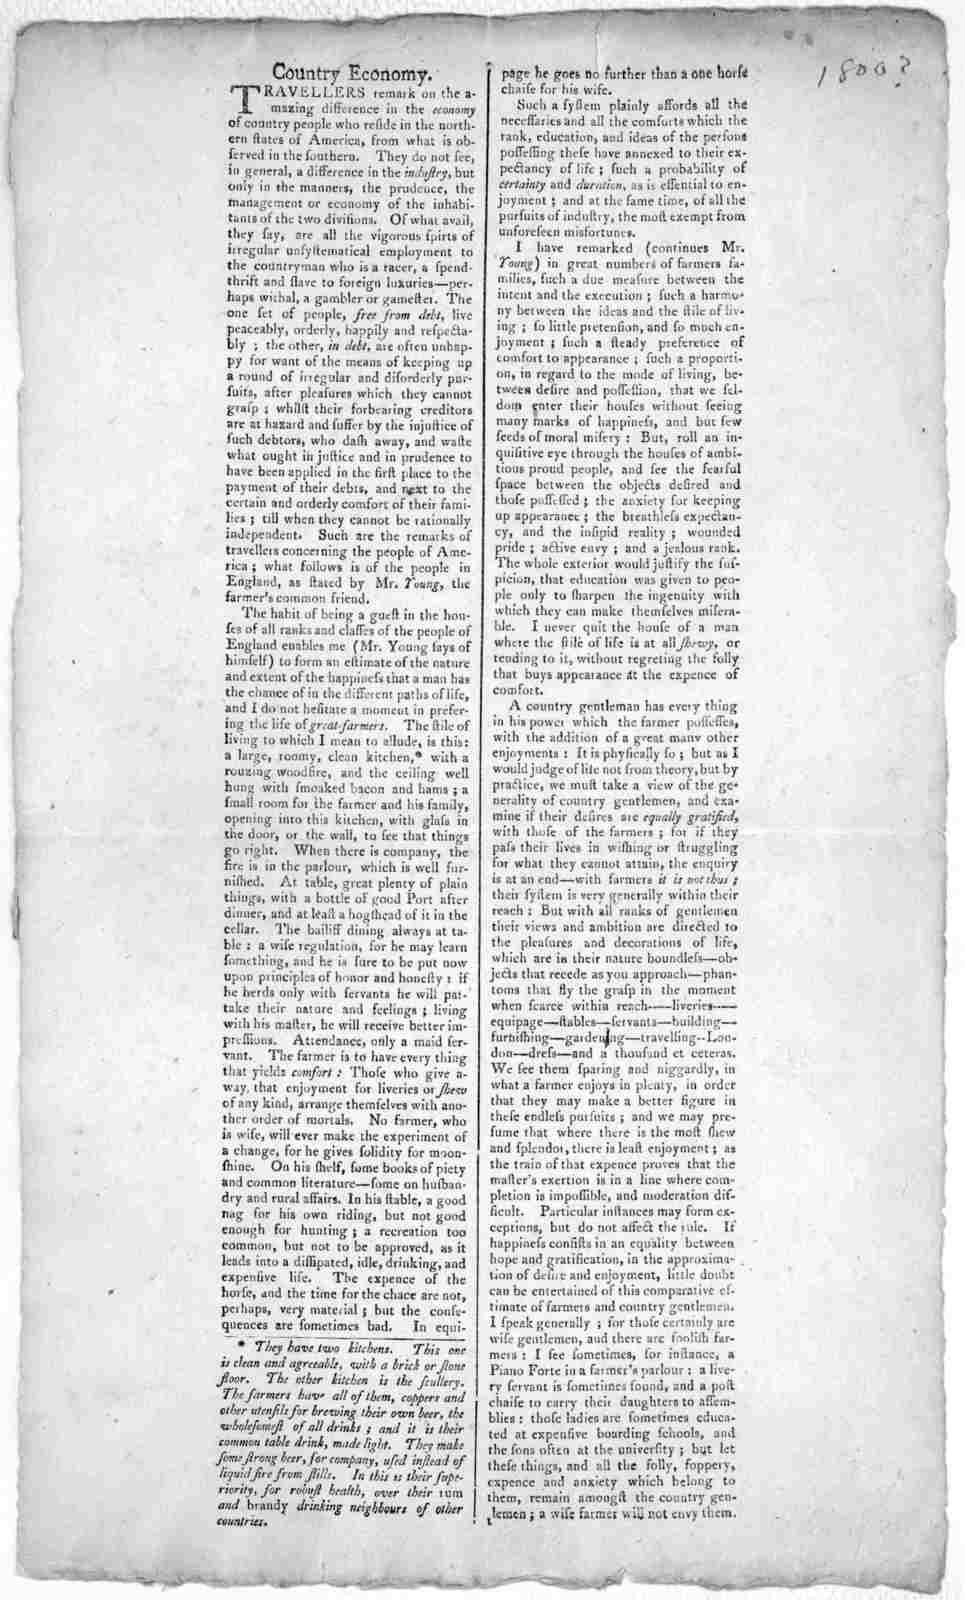 County economy Travellers remark on the amazing difference in economy of country people who reside in the northern states of America, from what is observed in the southern ... [1800?].